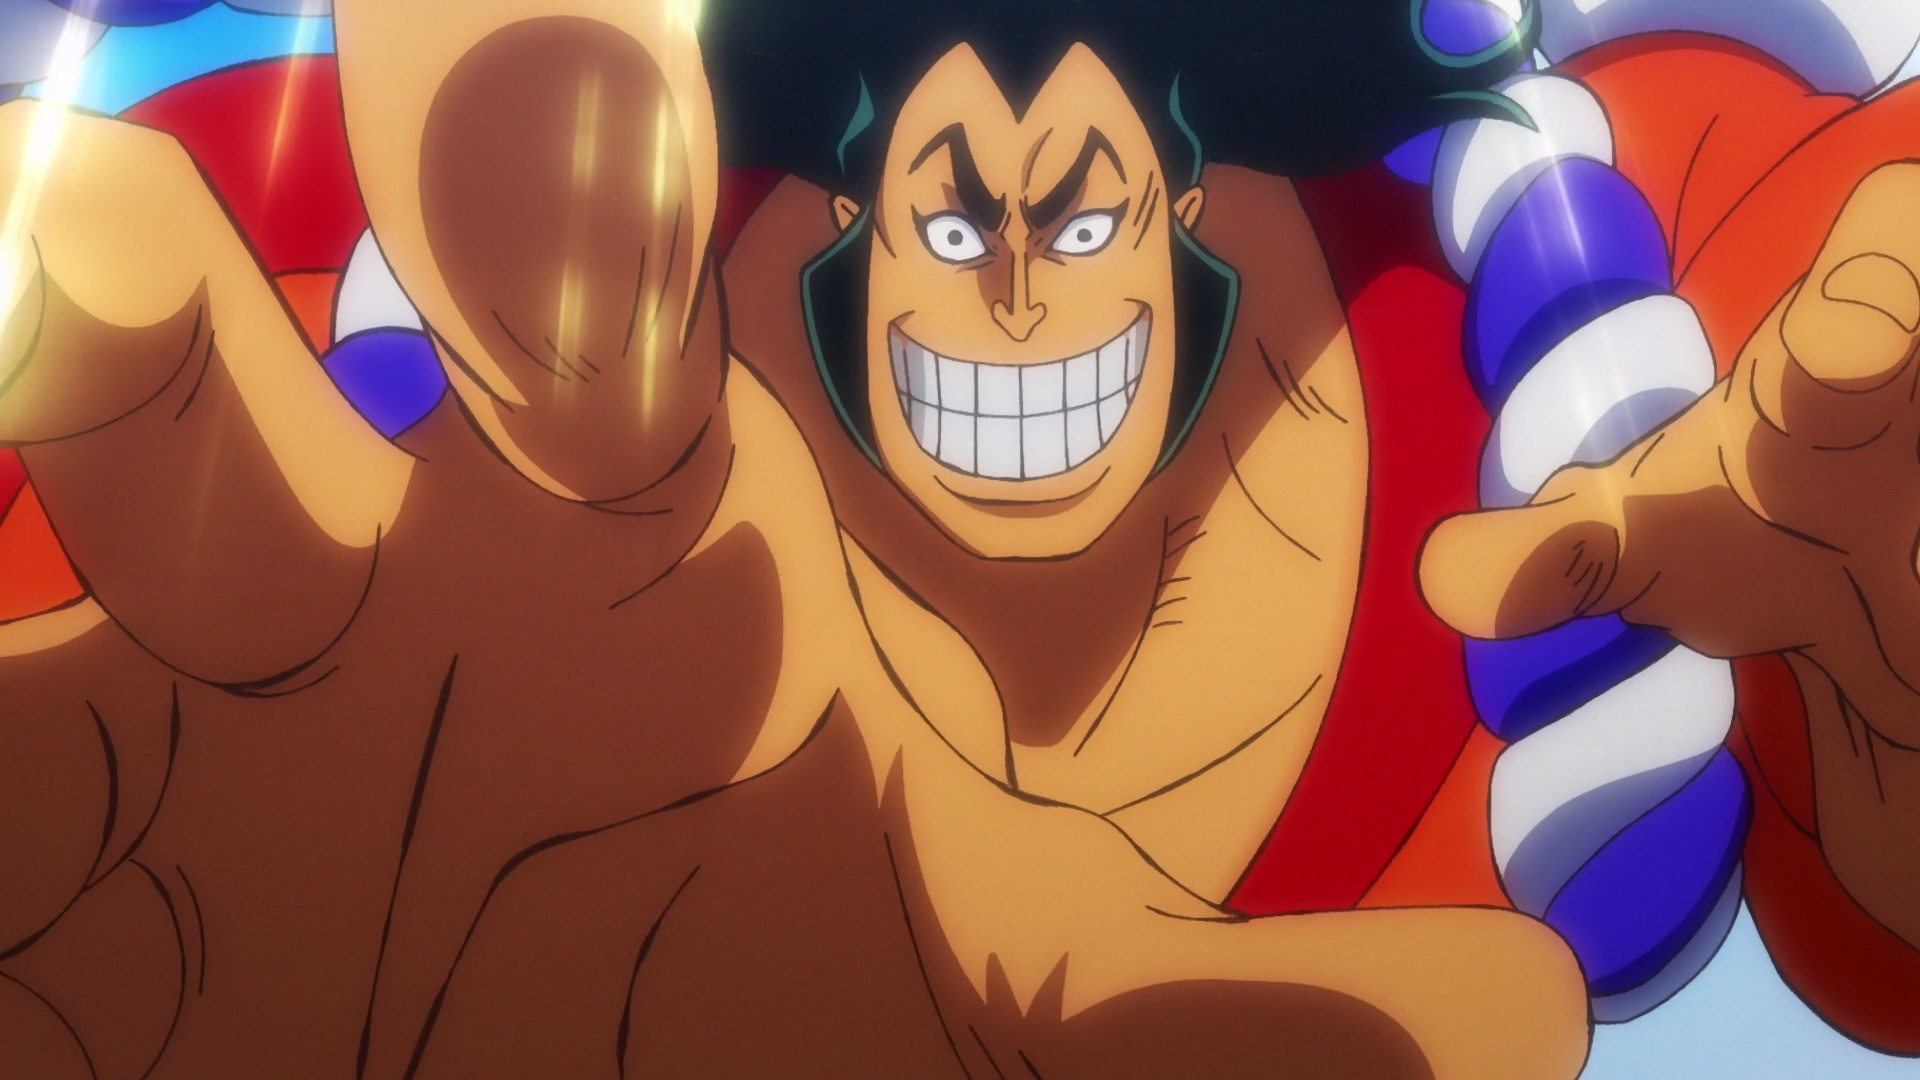 ONE PIECE 960 VOSTFR SD/HD/HD 10BITS/FHD News background